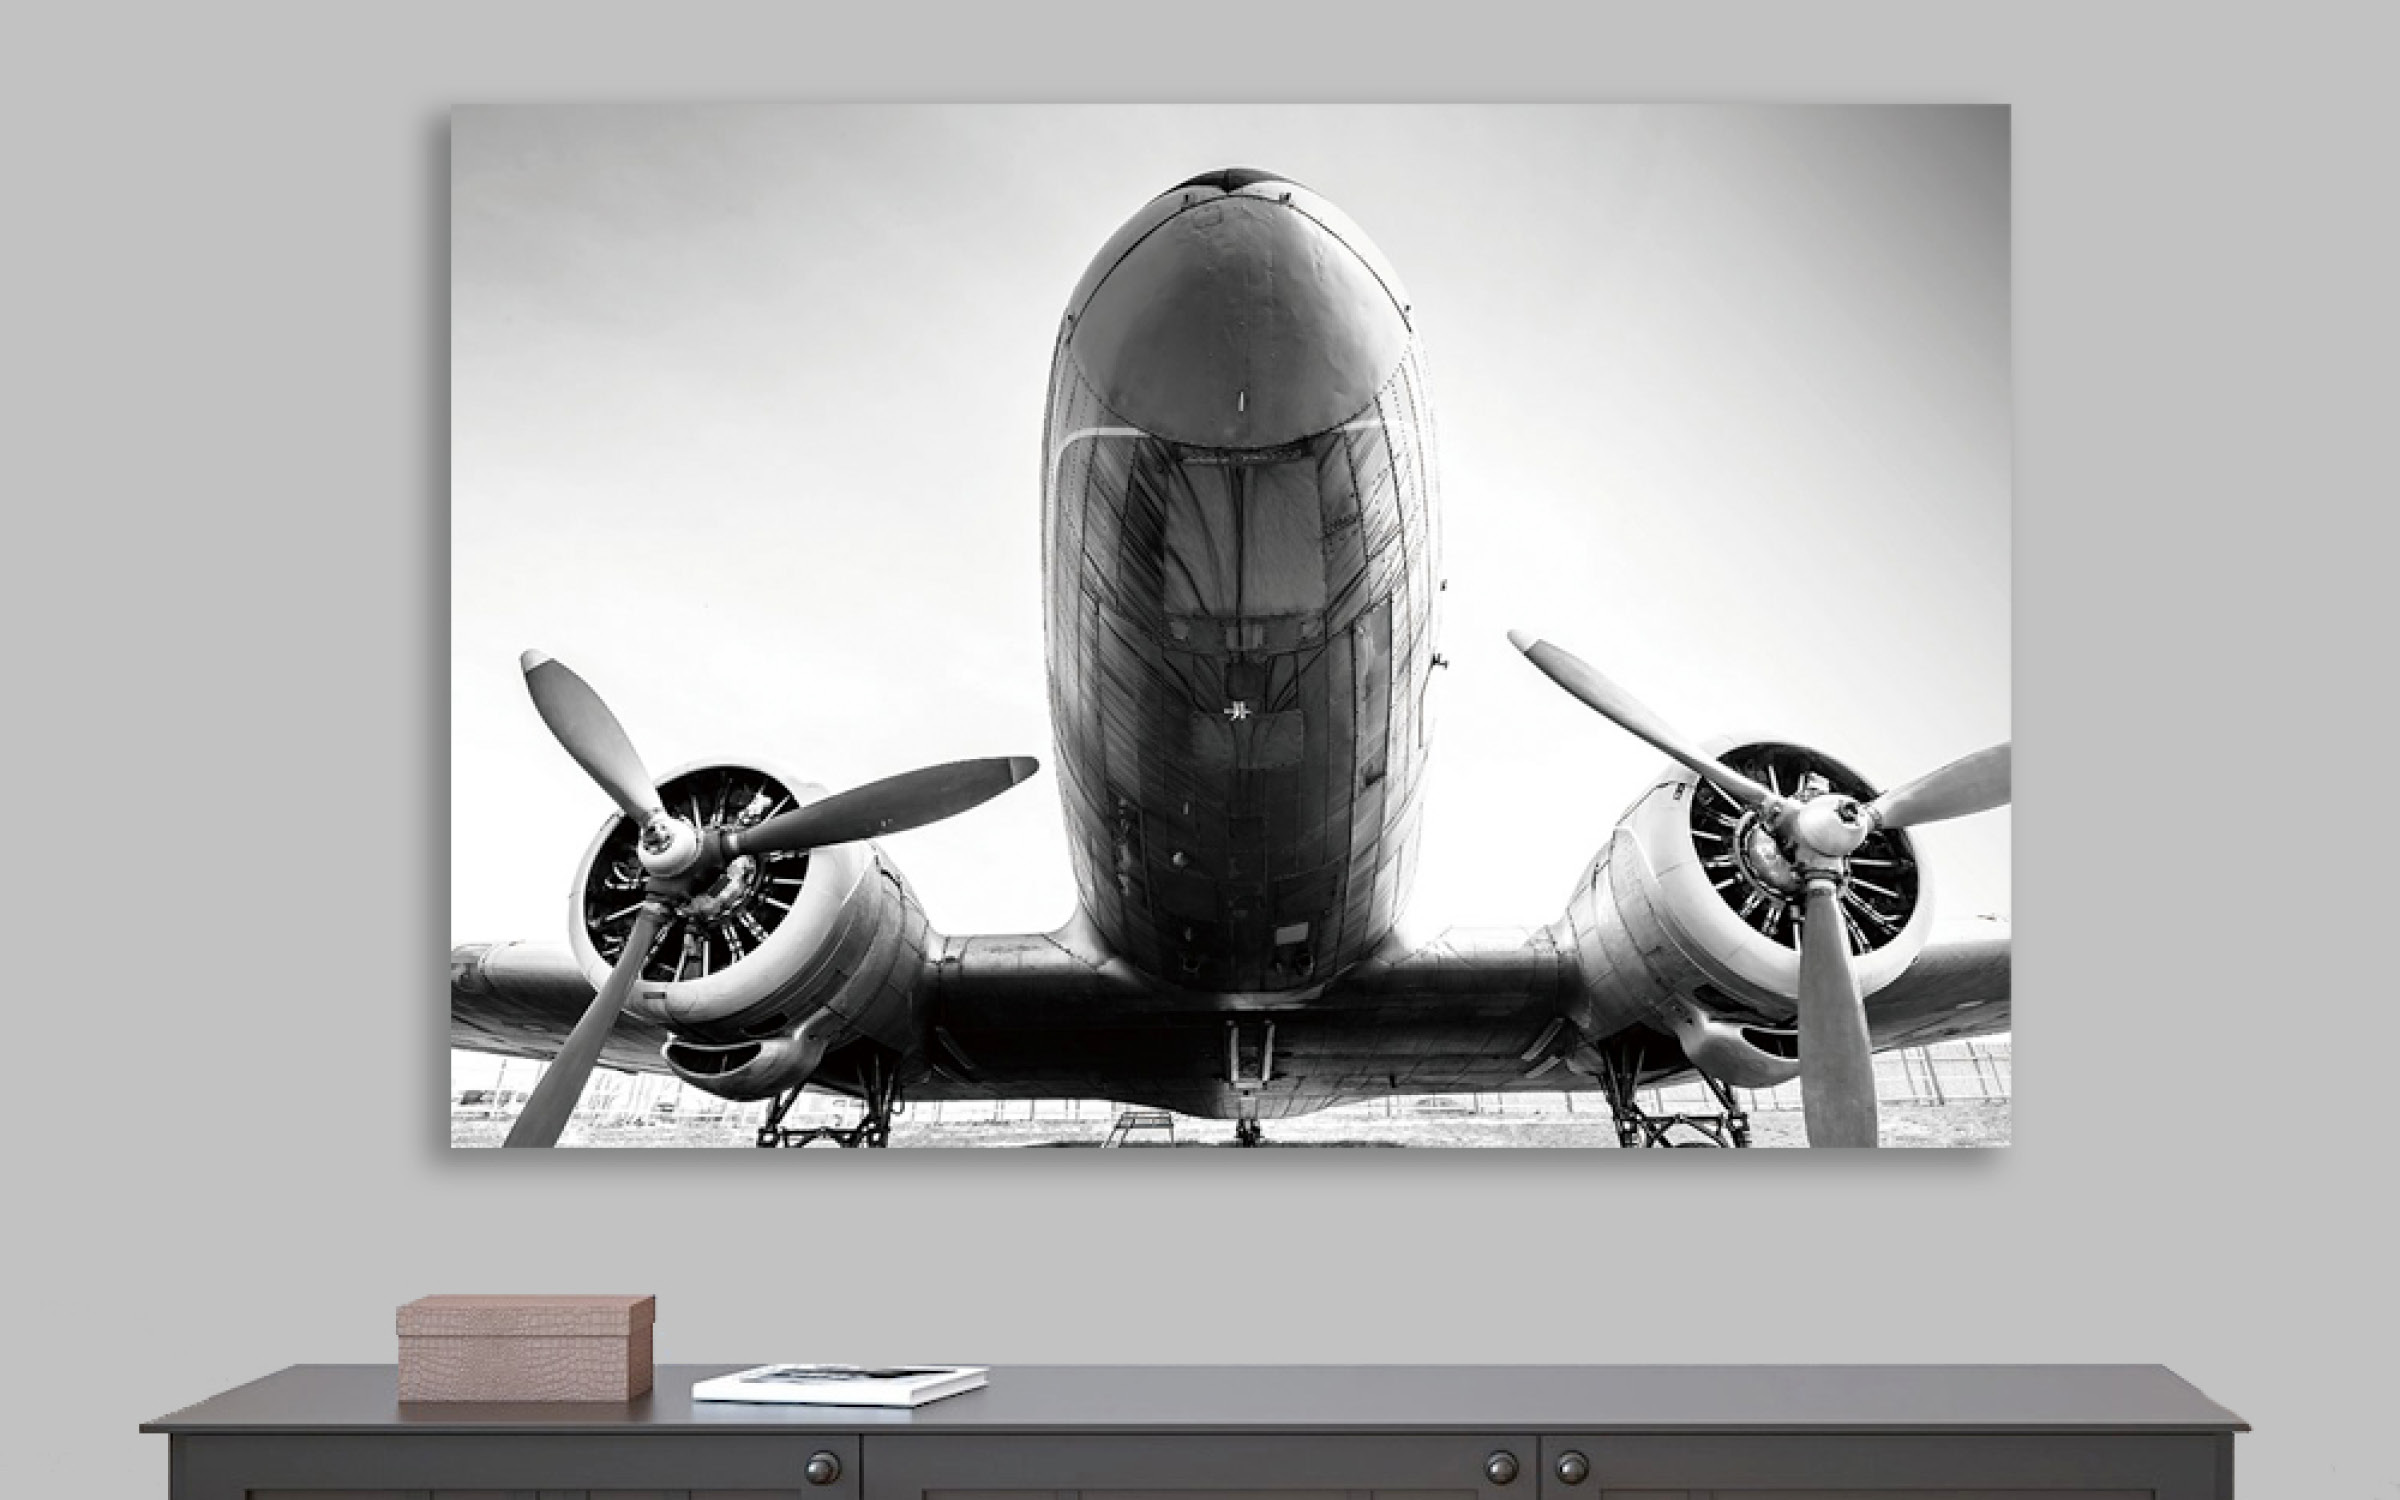 Airplane Modern Artwork Mountain Home | iFurnish, Frisco, CO